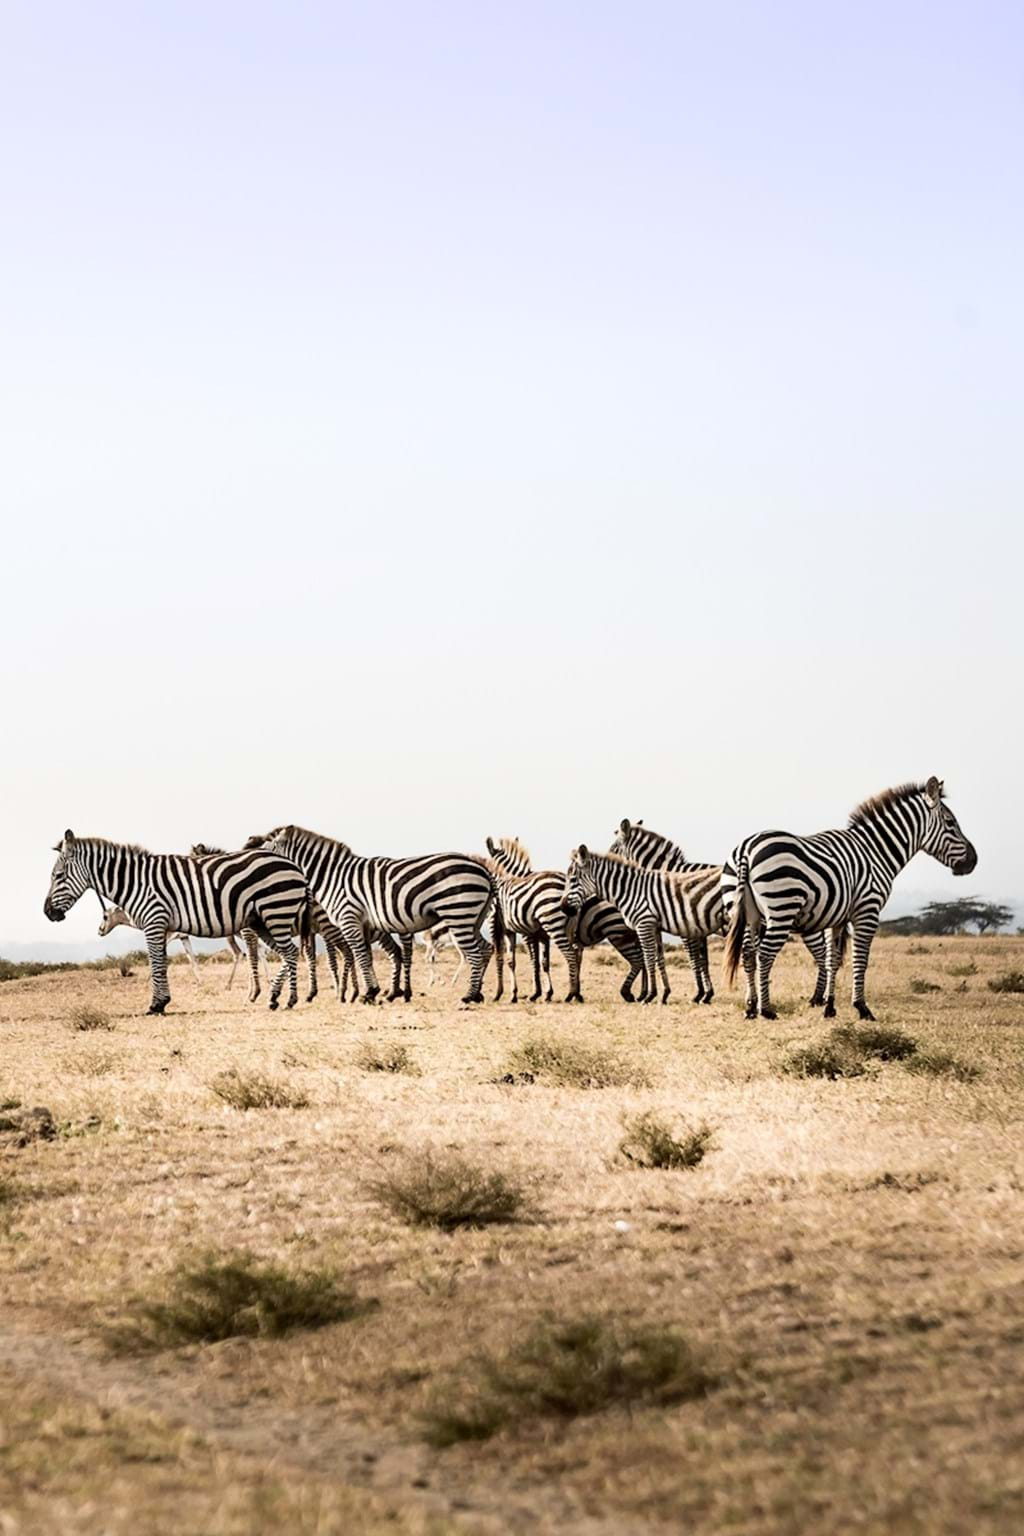 Poster: Barcoded zebras - Animal & Insects